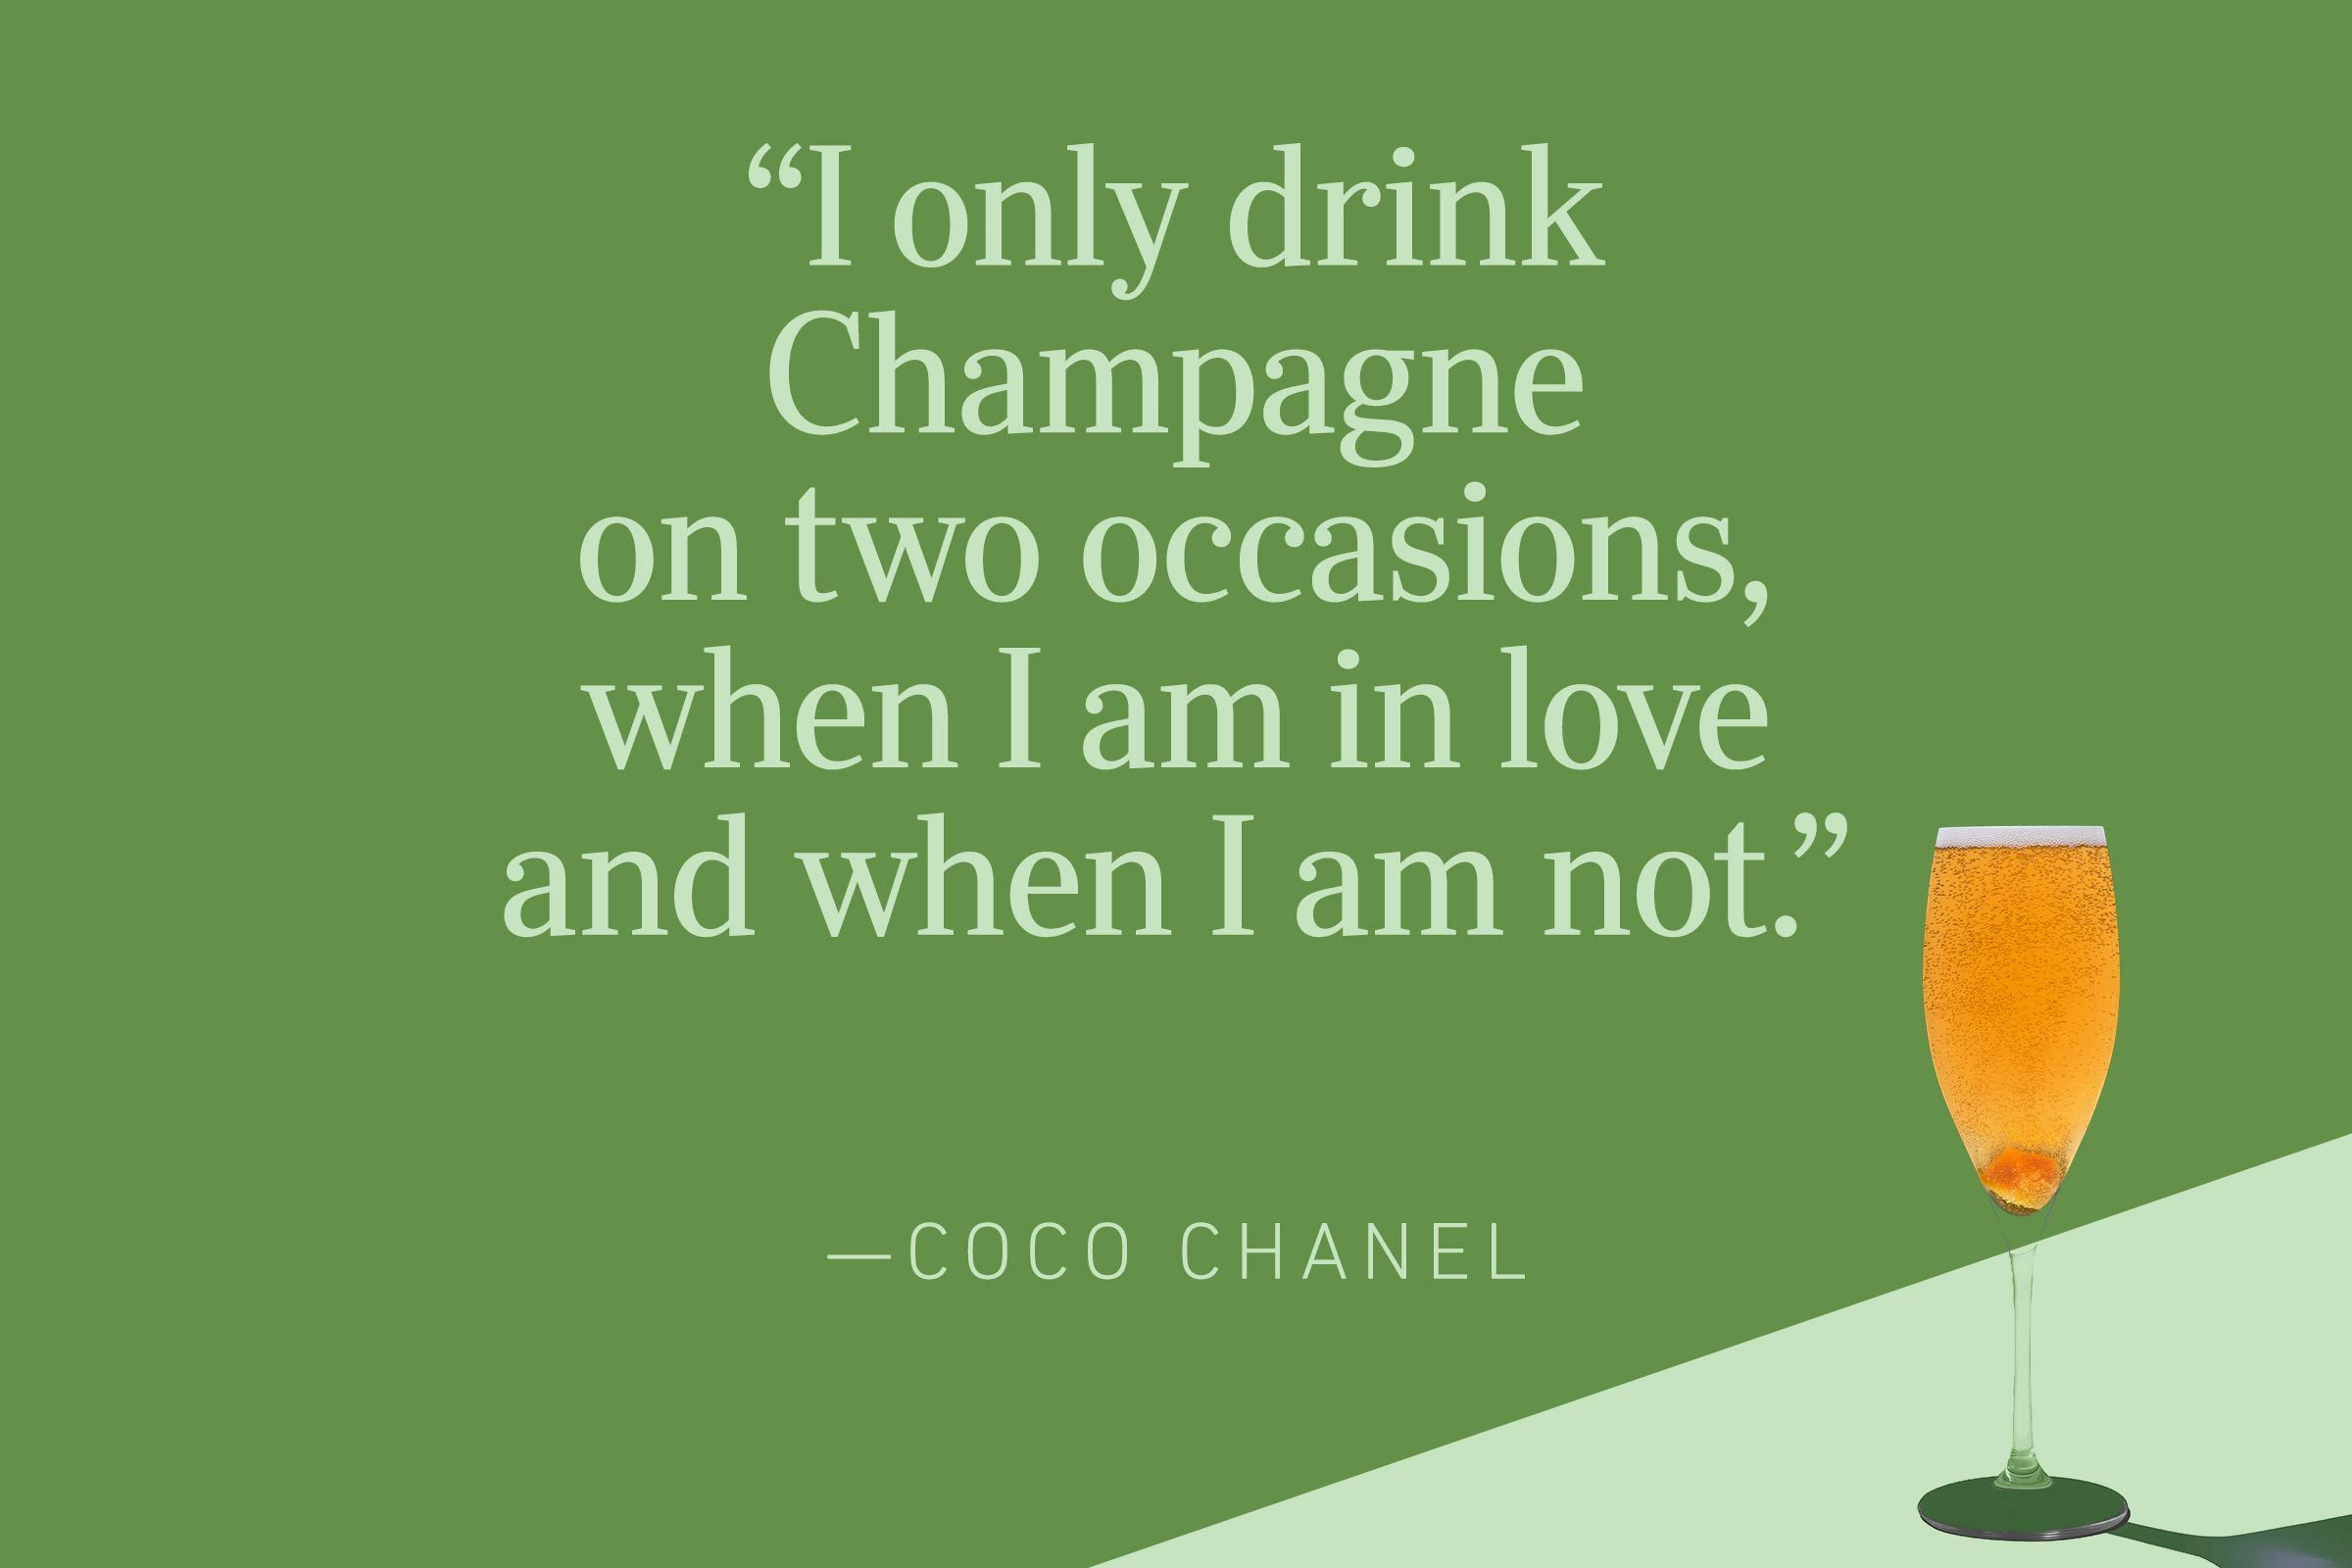 """""""I only drink Champagne on two occasions, when I am in love and when I am not.""""—Coco Chanel"""